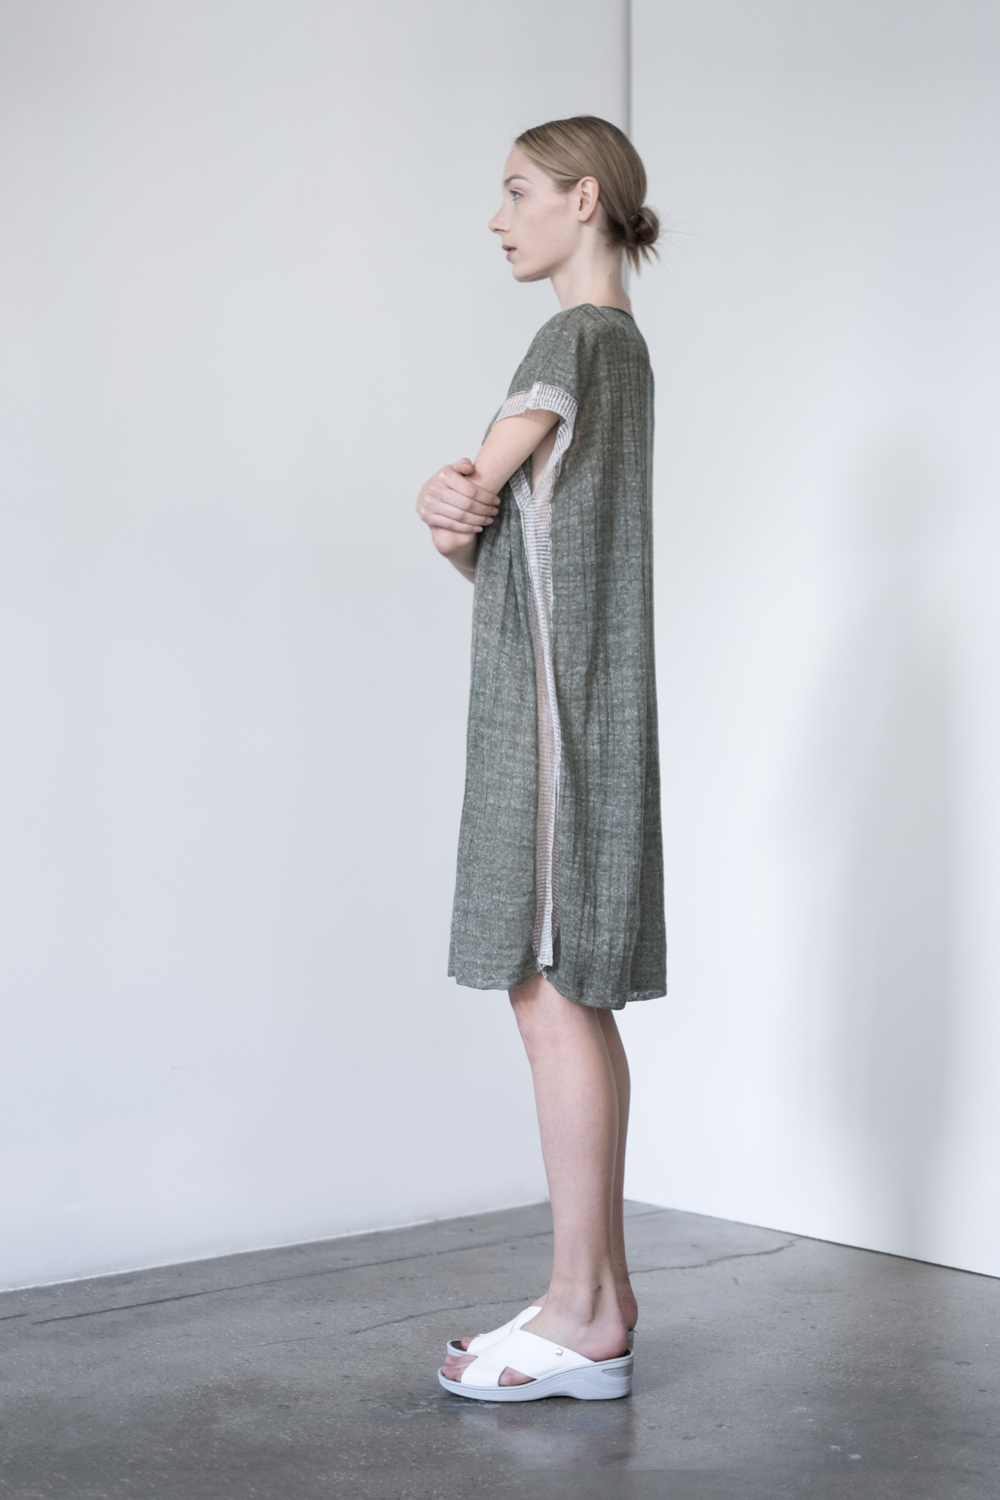 LOOK 29   TOP:   2221  / Clover  -     Linen dress & cover up, in Italian linen neps.